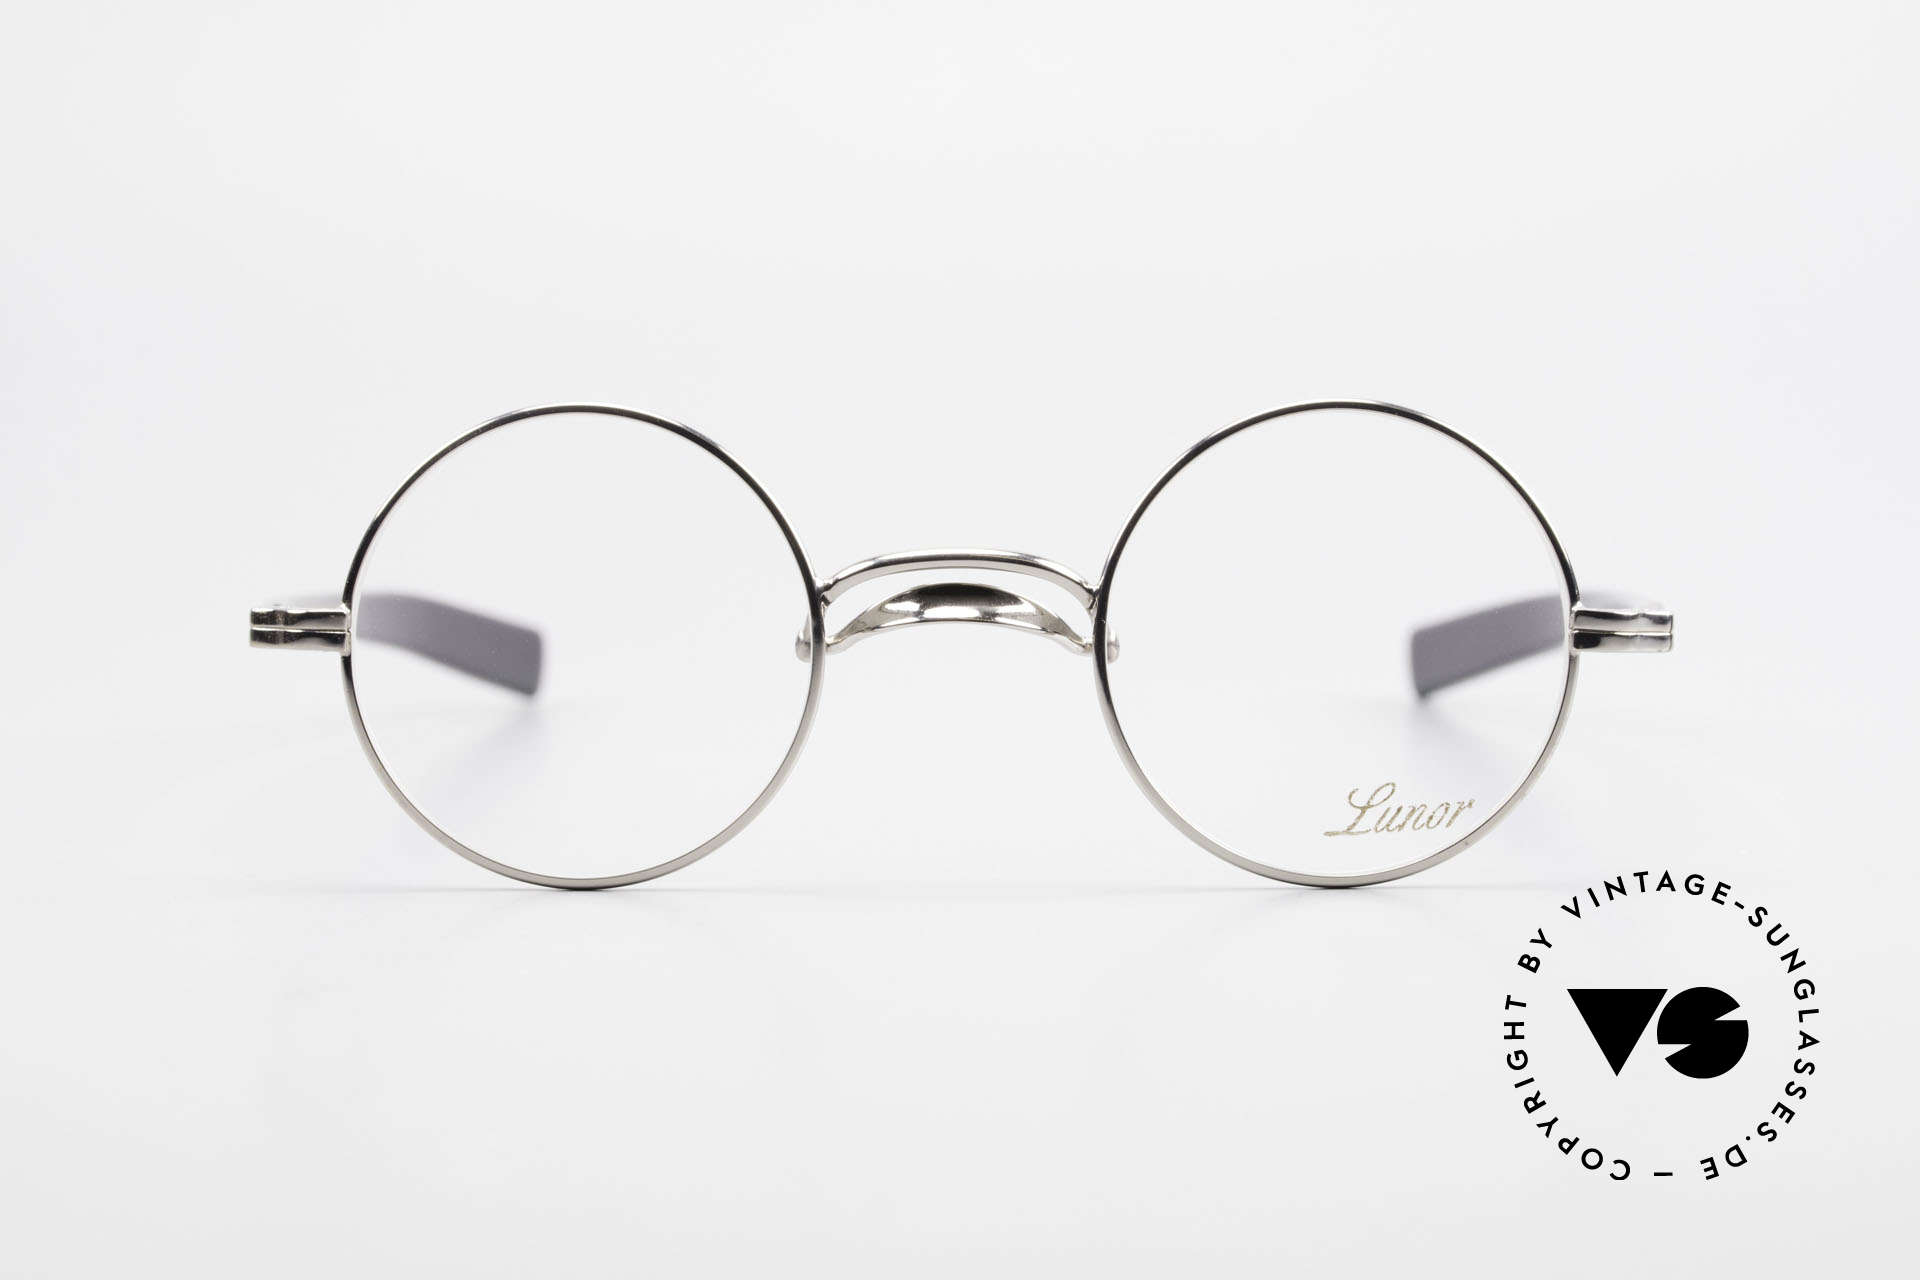 Lunor Swing A 31 Round Swing Bridge Vintage Glasses, FRAME is PLATINUM-PLATED'; truly sophisticated specs, Made for Men and Women